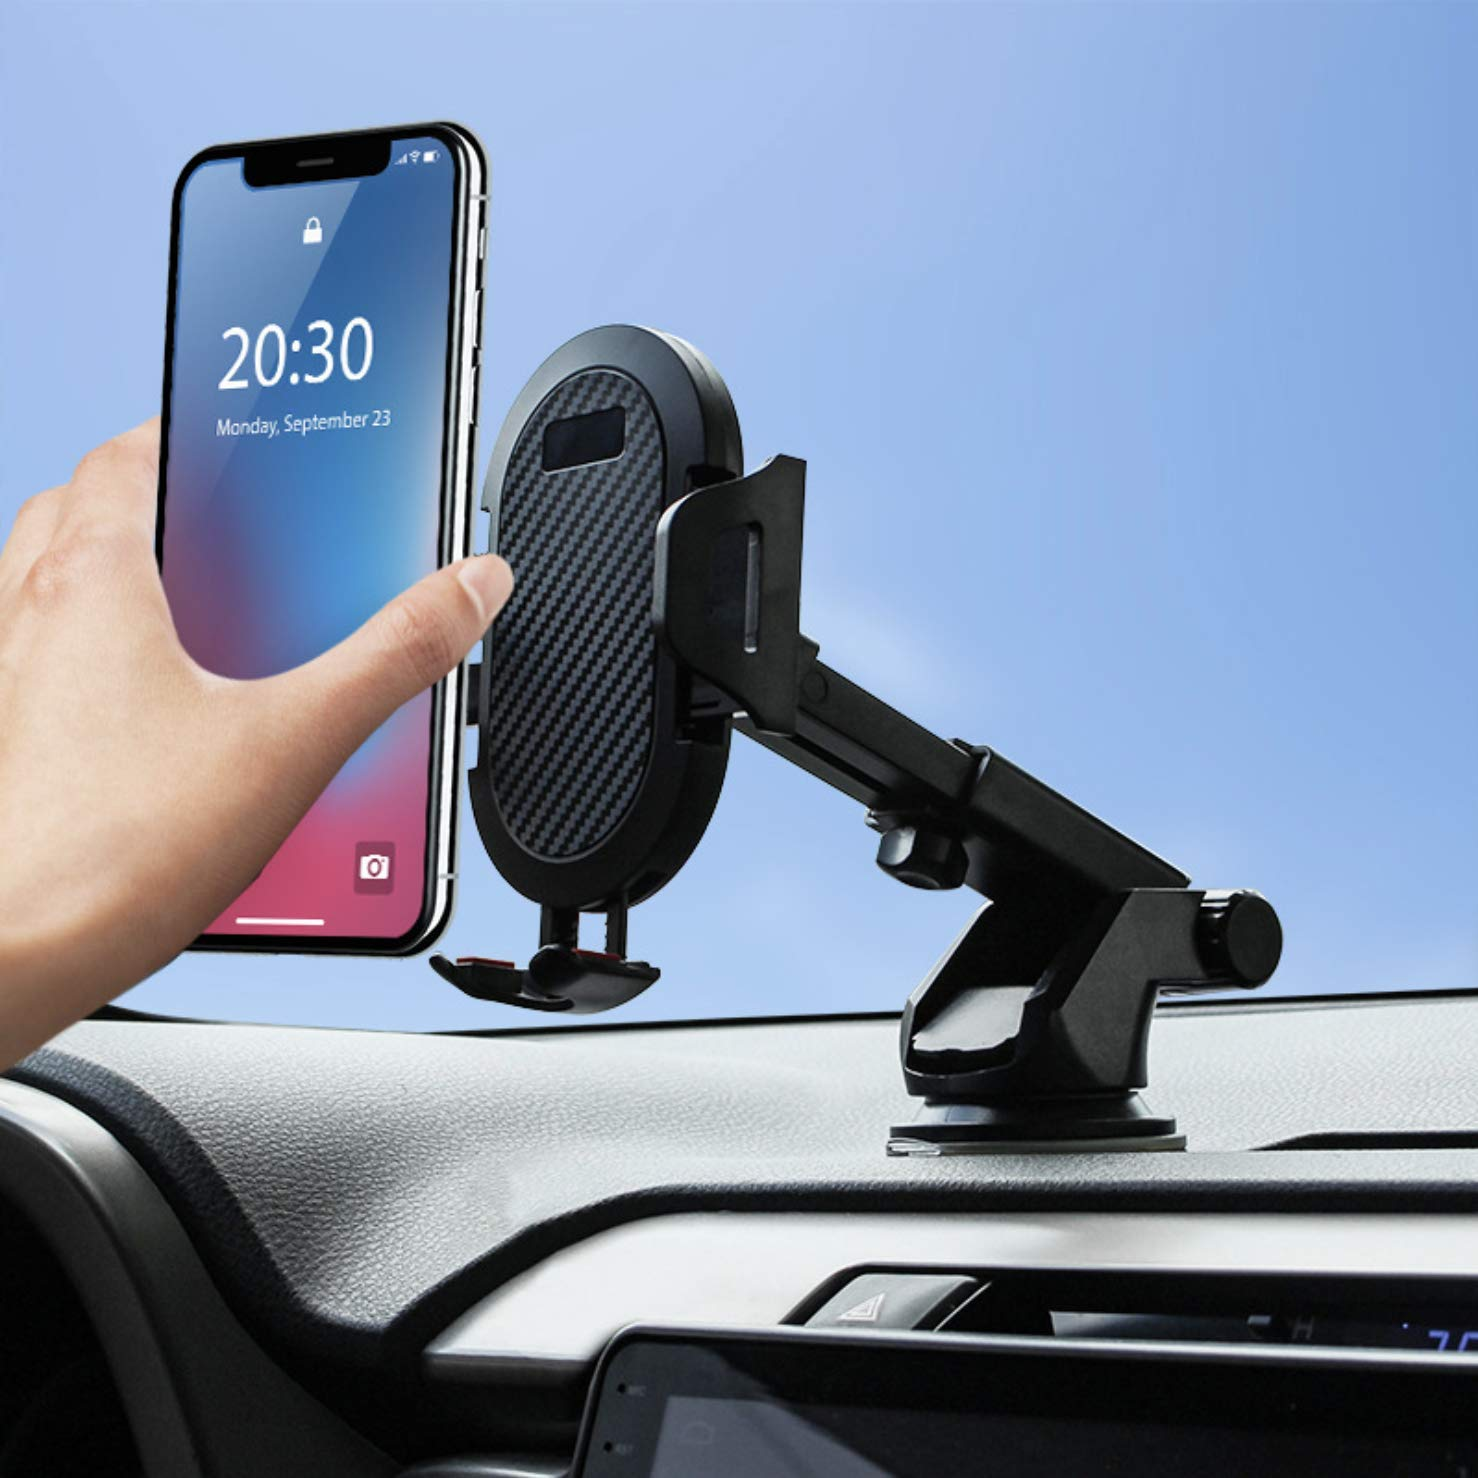 Automatic Car Phone Mount Black Shockproof Design Compatible iPhone 11 pro,11 pro max,X,XS,XR,8,7,6 Plus,Galaxy S7,8,9,10,Google Nexus 360/° Universal Dashboard Windshield Air Vent Car Phone Holder